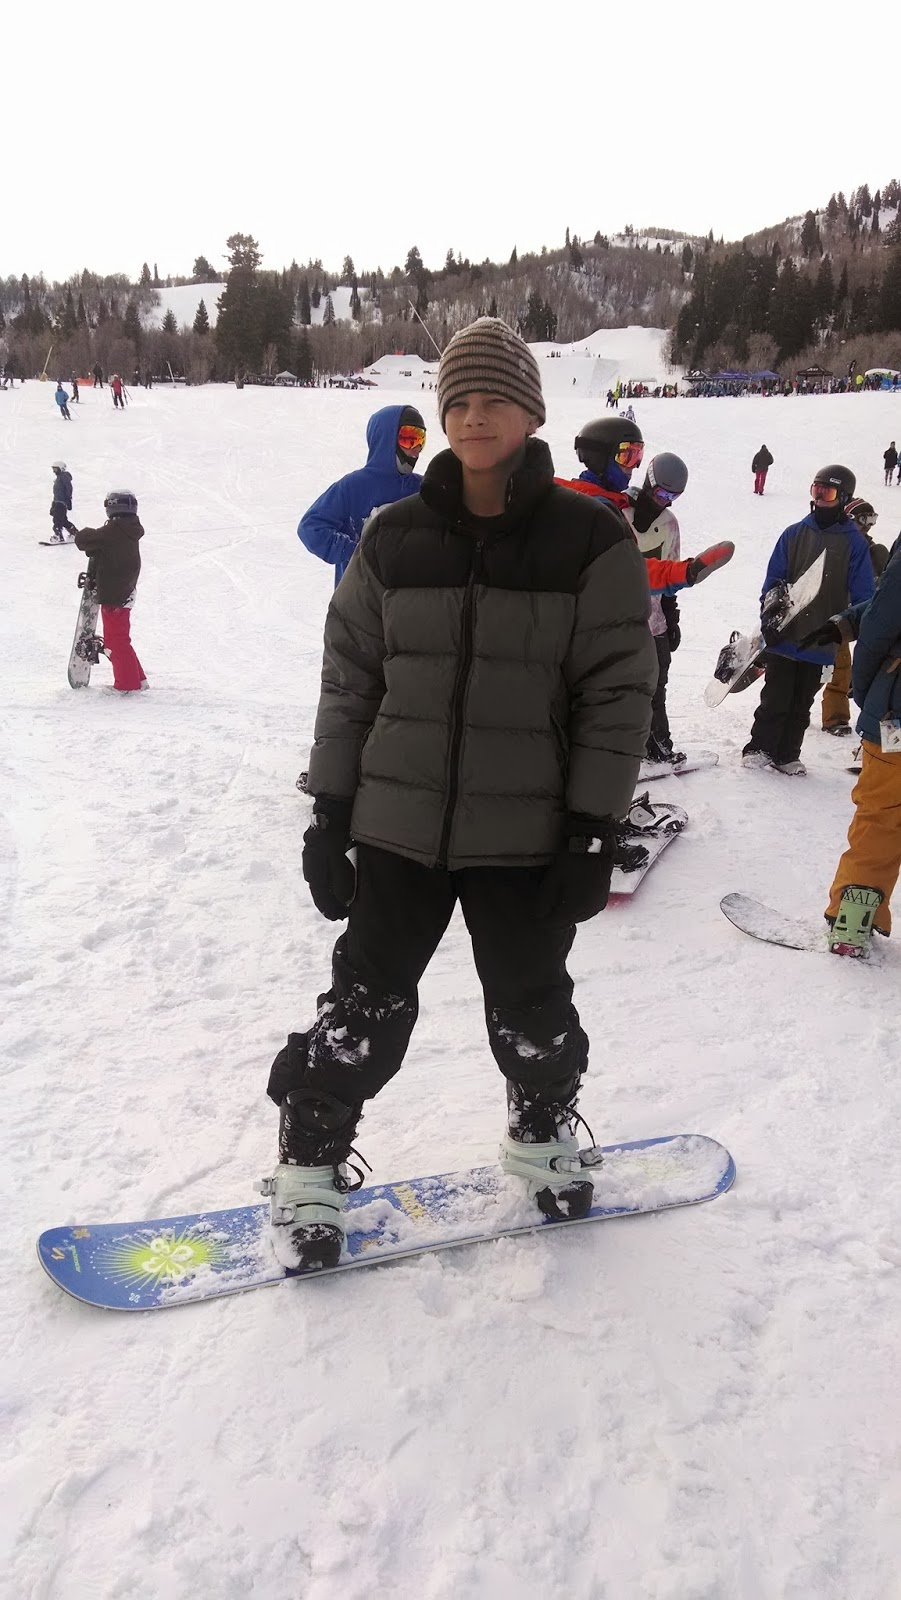 How to convince my parents to let me go away for school to snowboard?